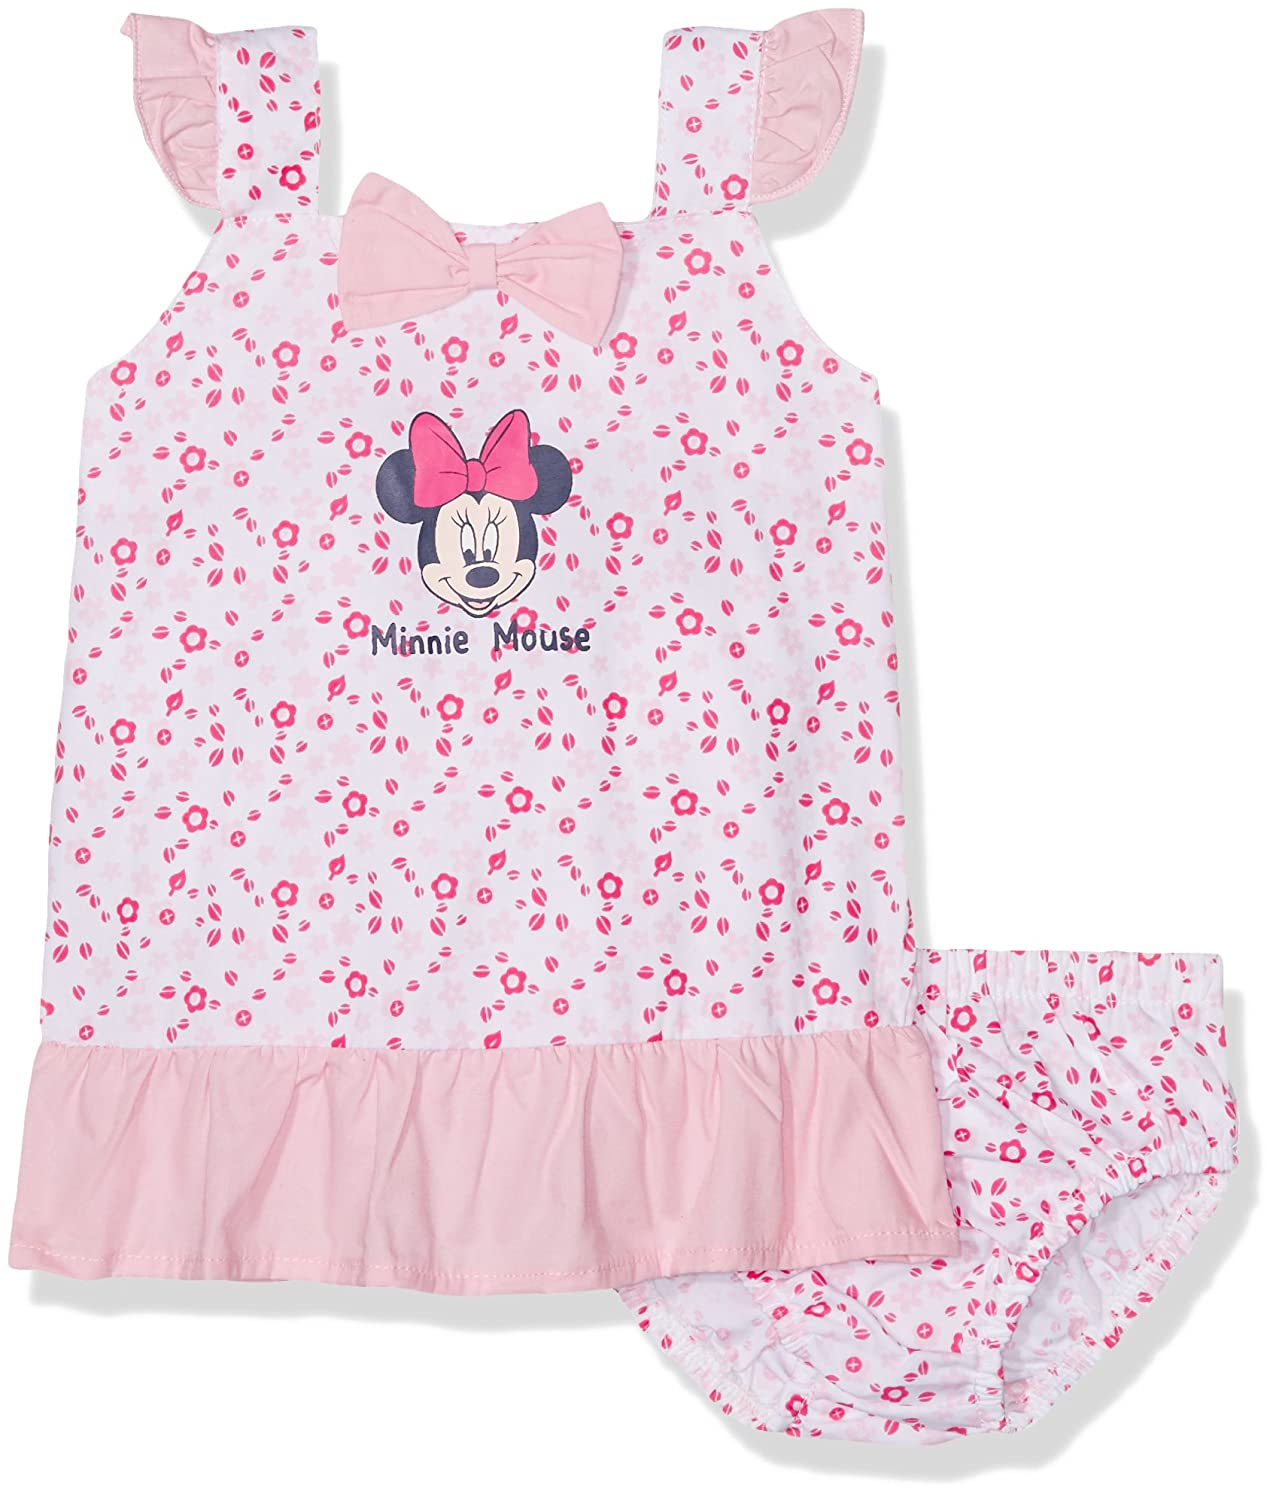 369cc1f1f Disney Baby Girl's Minnie Mouse Romper, Pink, 18-24 Months (Manufacturer  Size:24 Months): Amazon.co.uk: Clothing